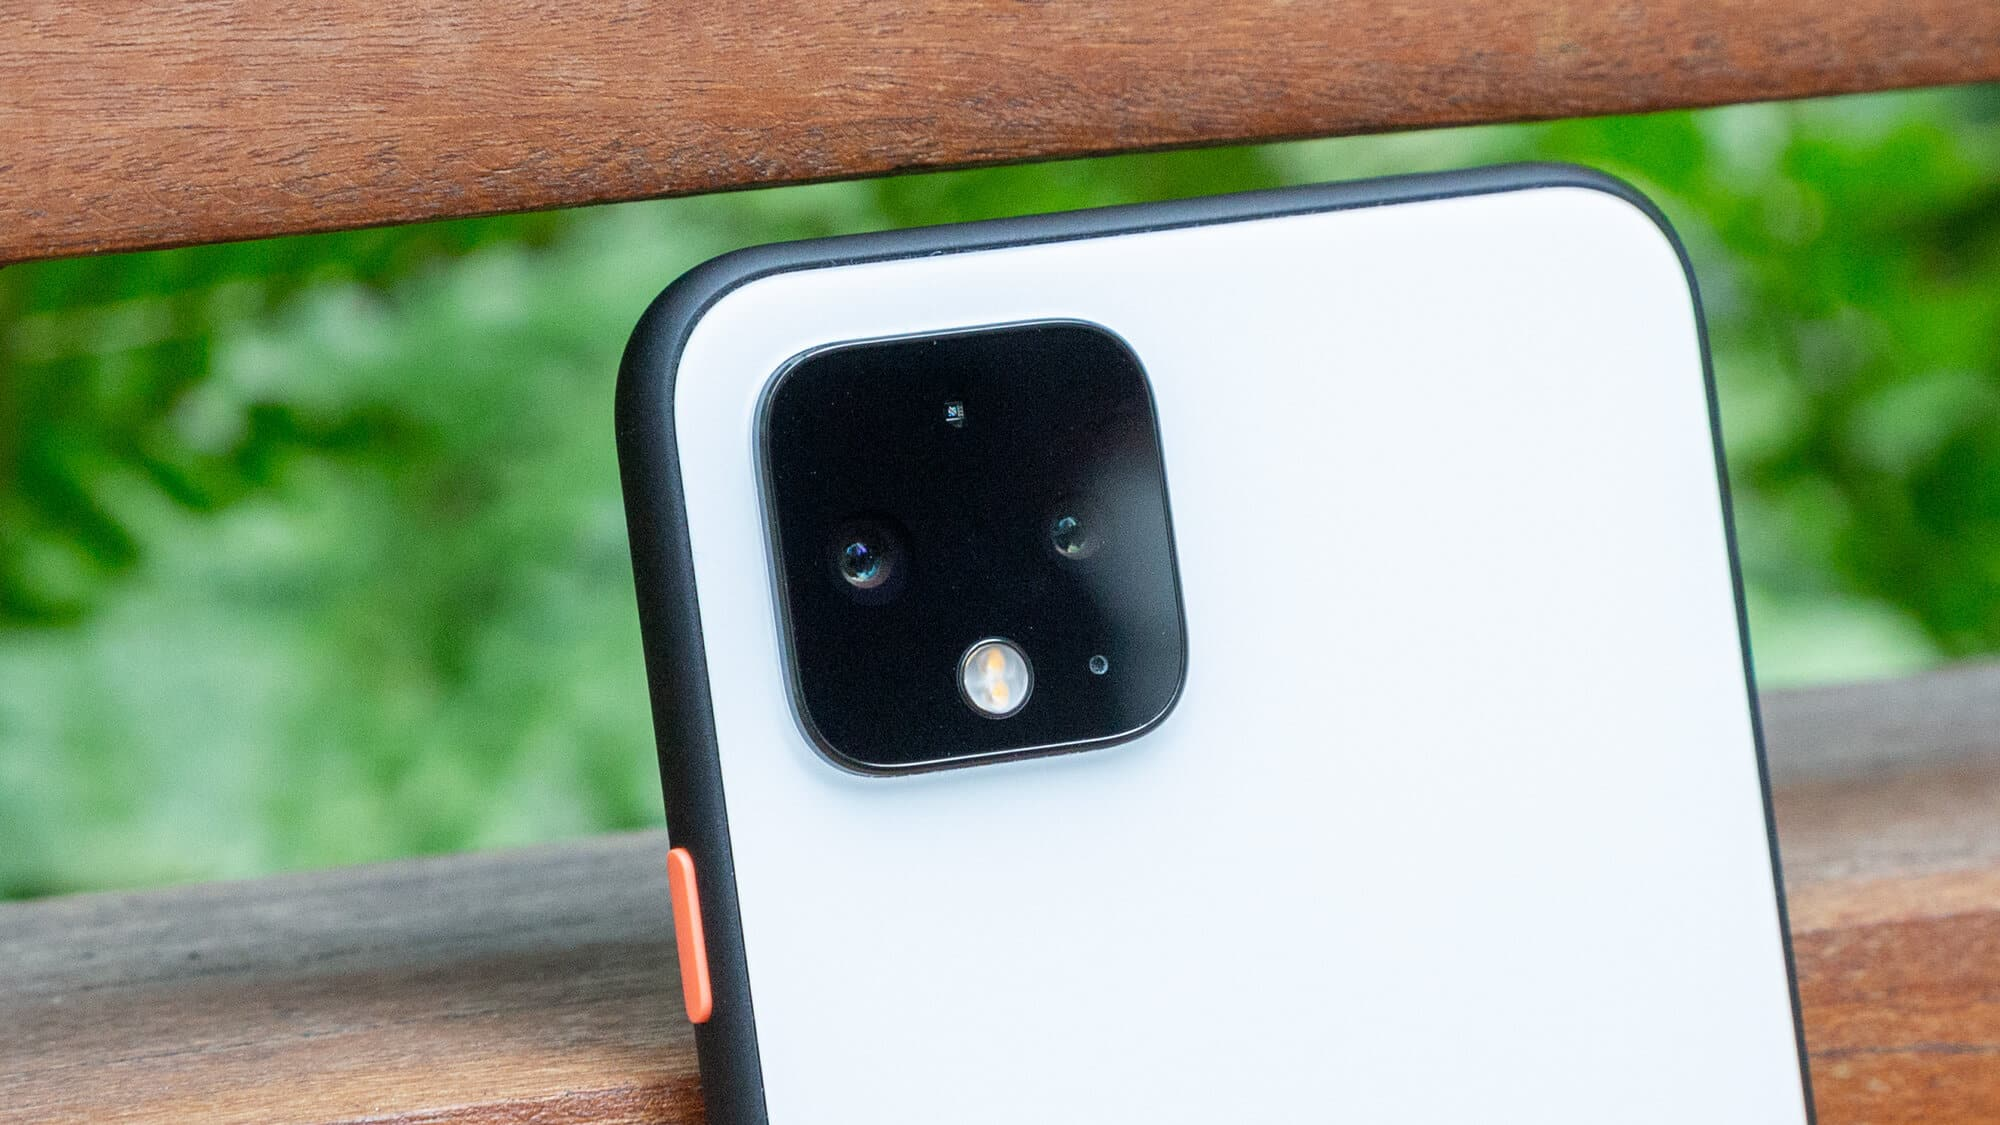 Google Pixel 5 may not sport Qualcomm's top-of-the-line processor